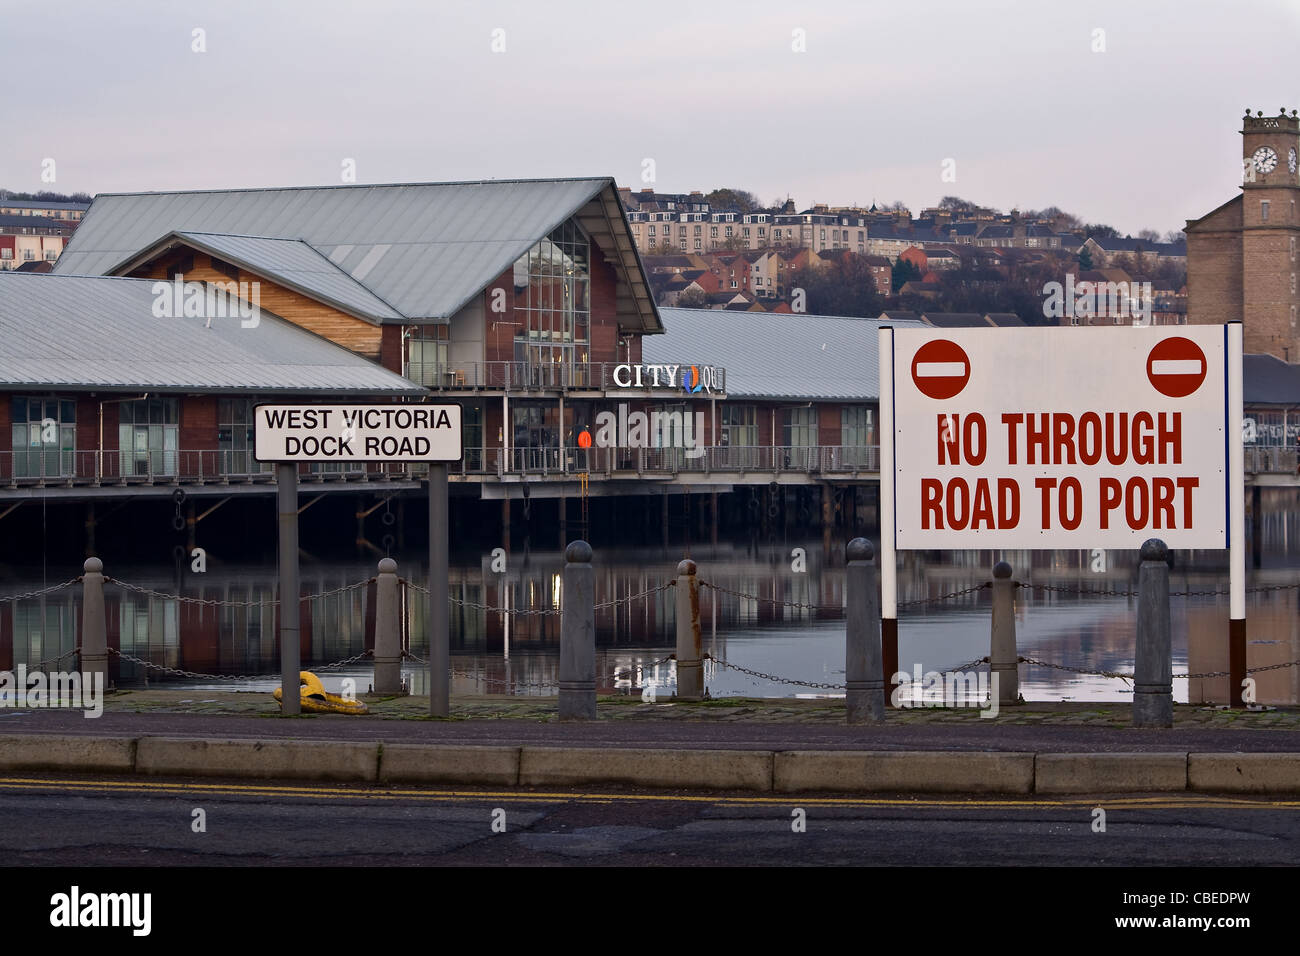 Road signs restrictions stating that there is no through road to port at West Victoria Dock in Dundee,UK - Stock Image